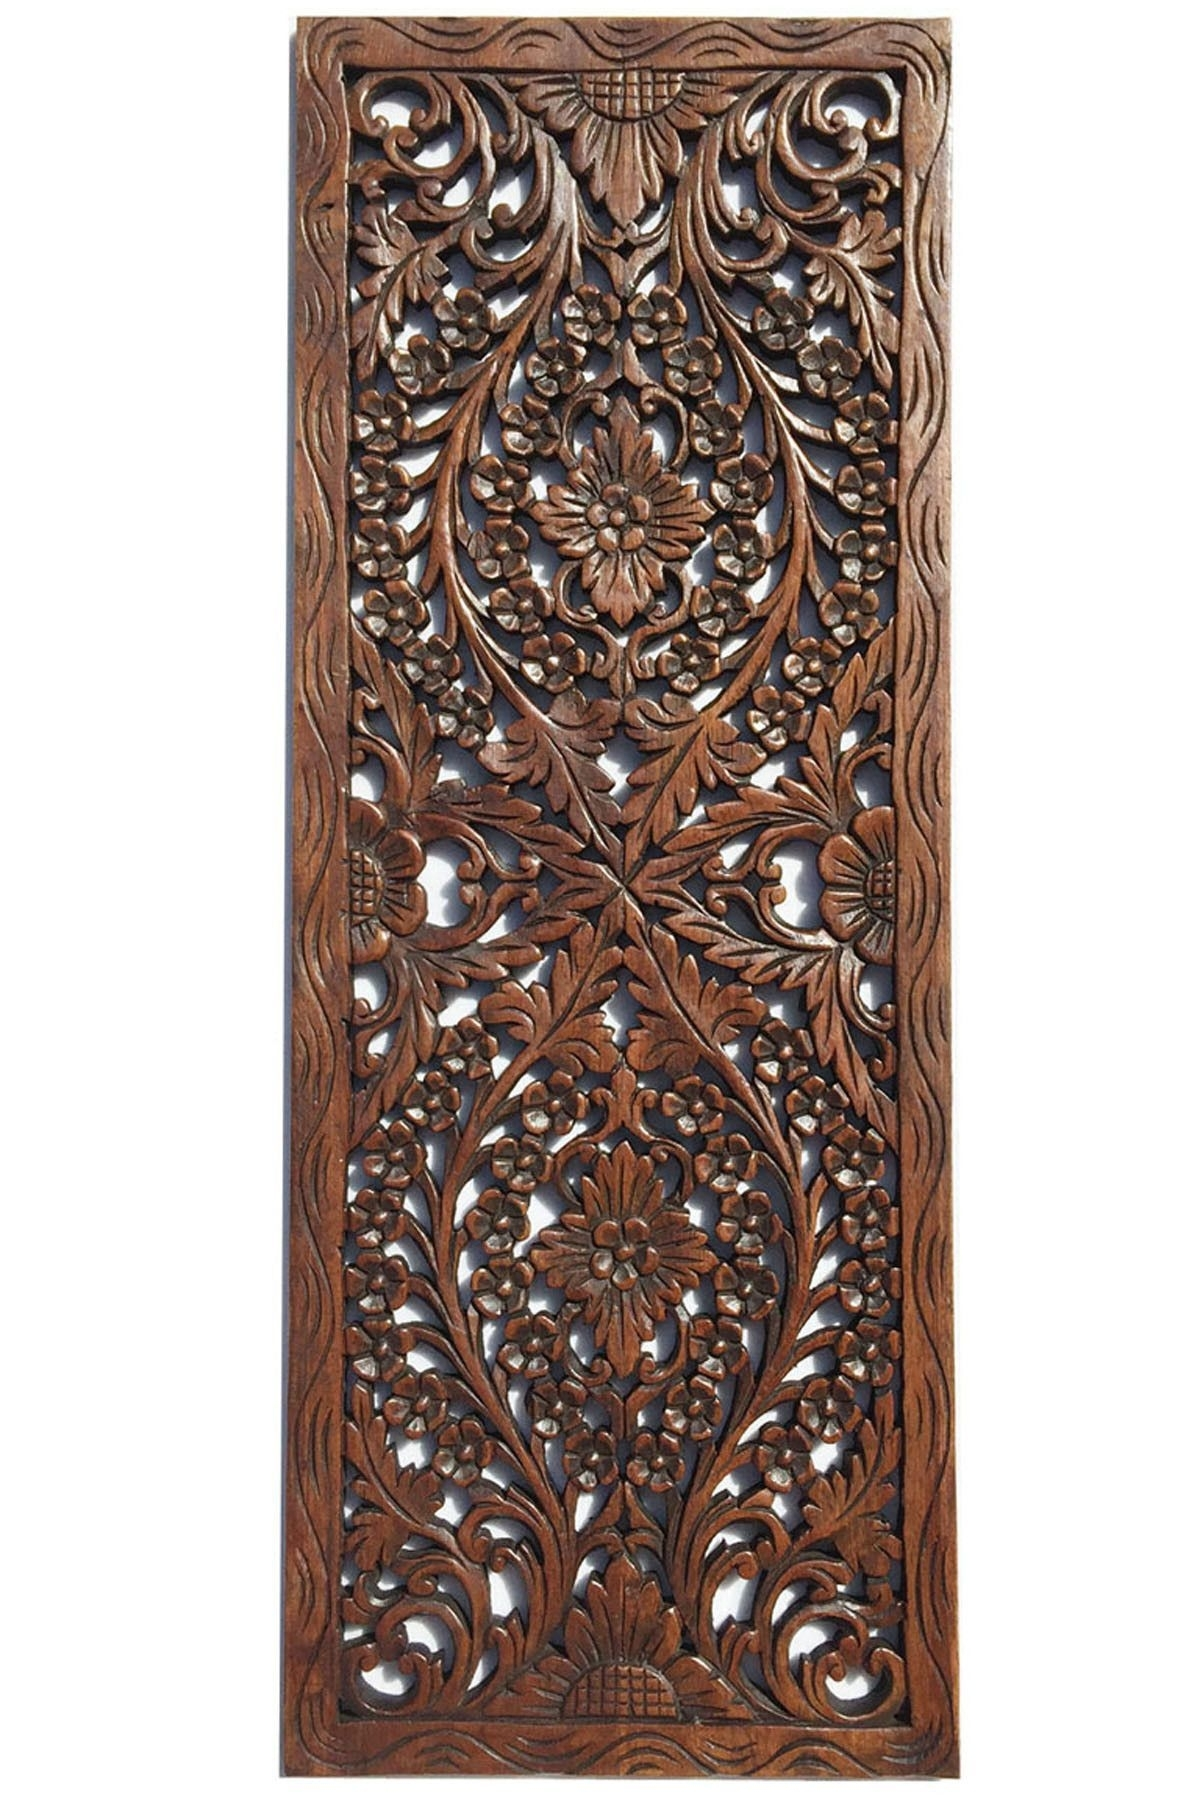 Floral Wood Carved Wall Panel. Wall Hanging. Asian Home Decor Within Most Current Asian Wall Art (Gallery 7 of 15)